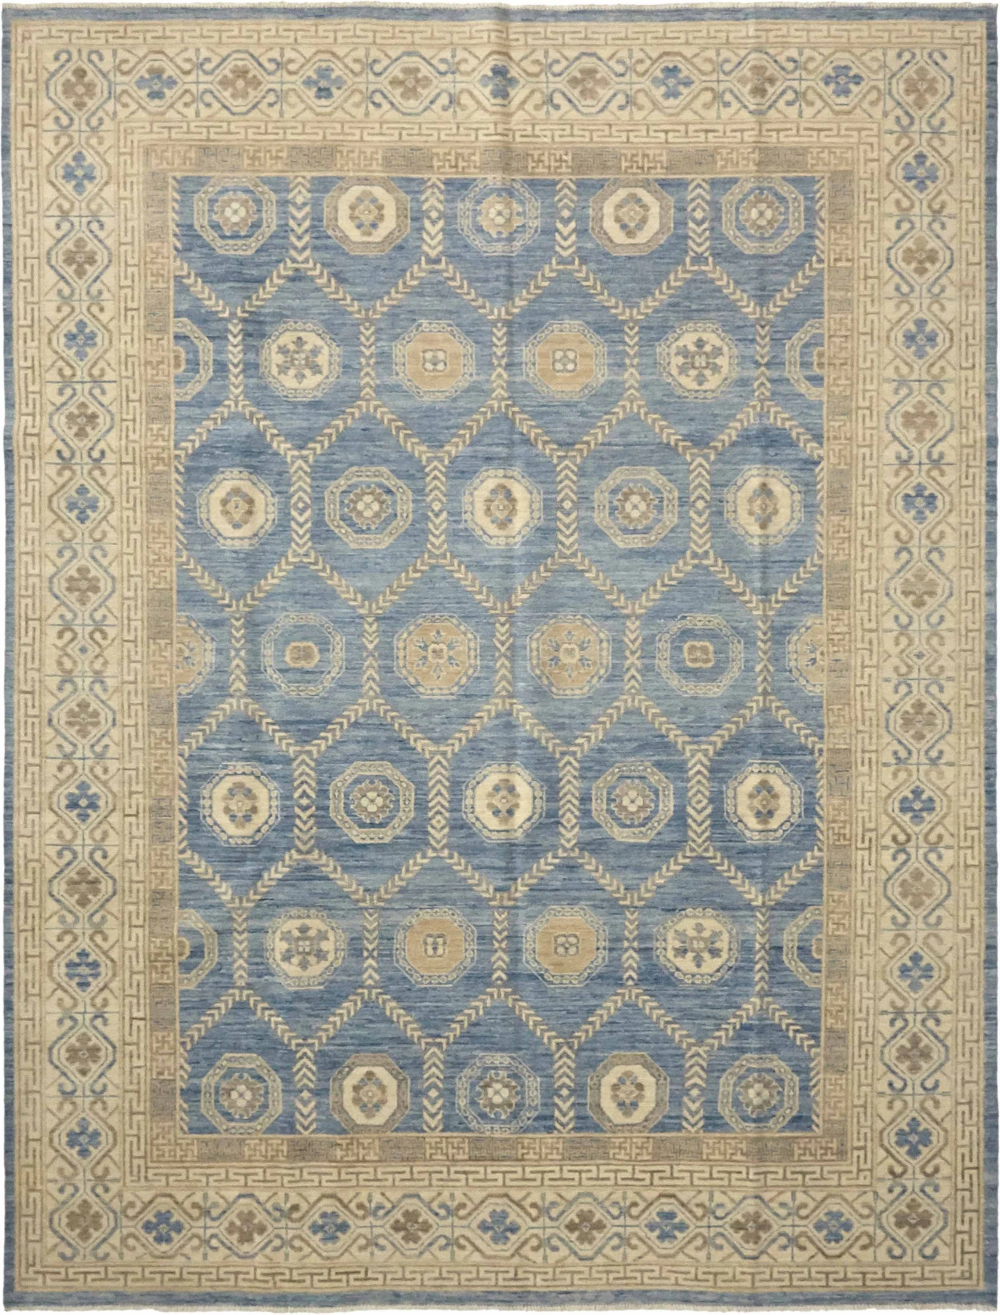 Khotan Hand Knotted Rug Wool 9 X 12 Blue By Solo Rugs In 2020 Area Rug Design Khotan Area Rugs